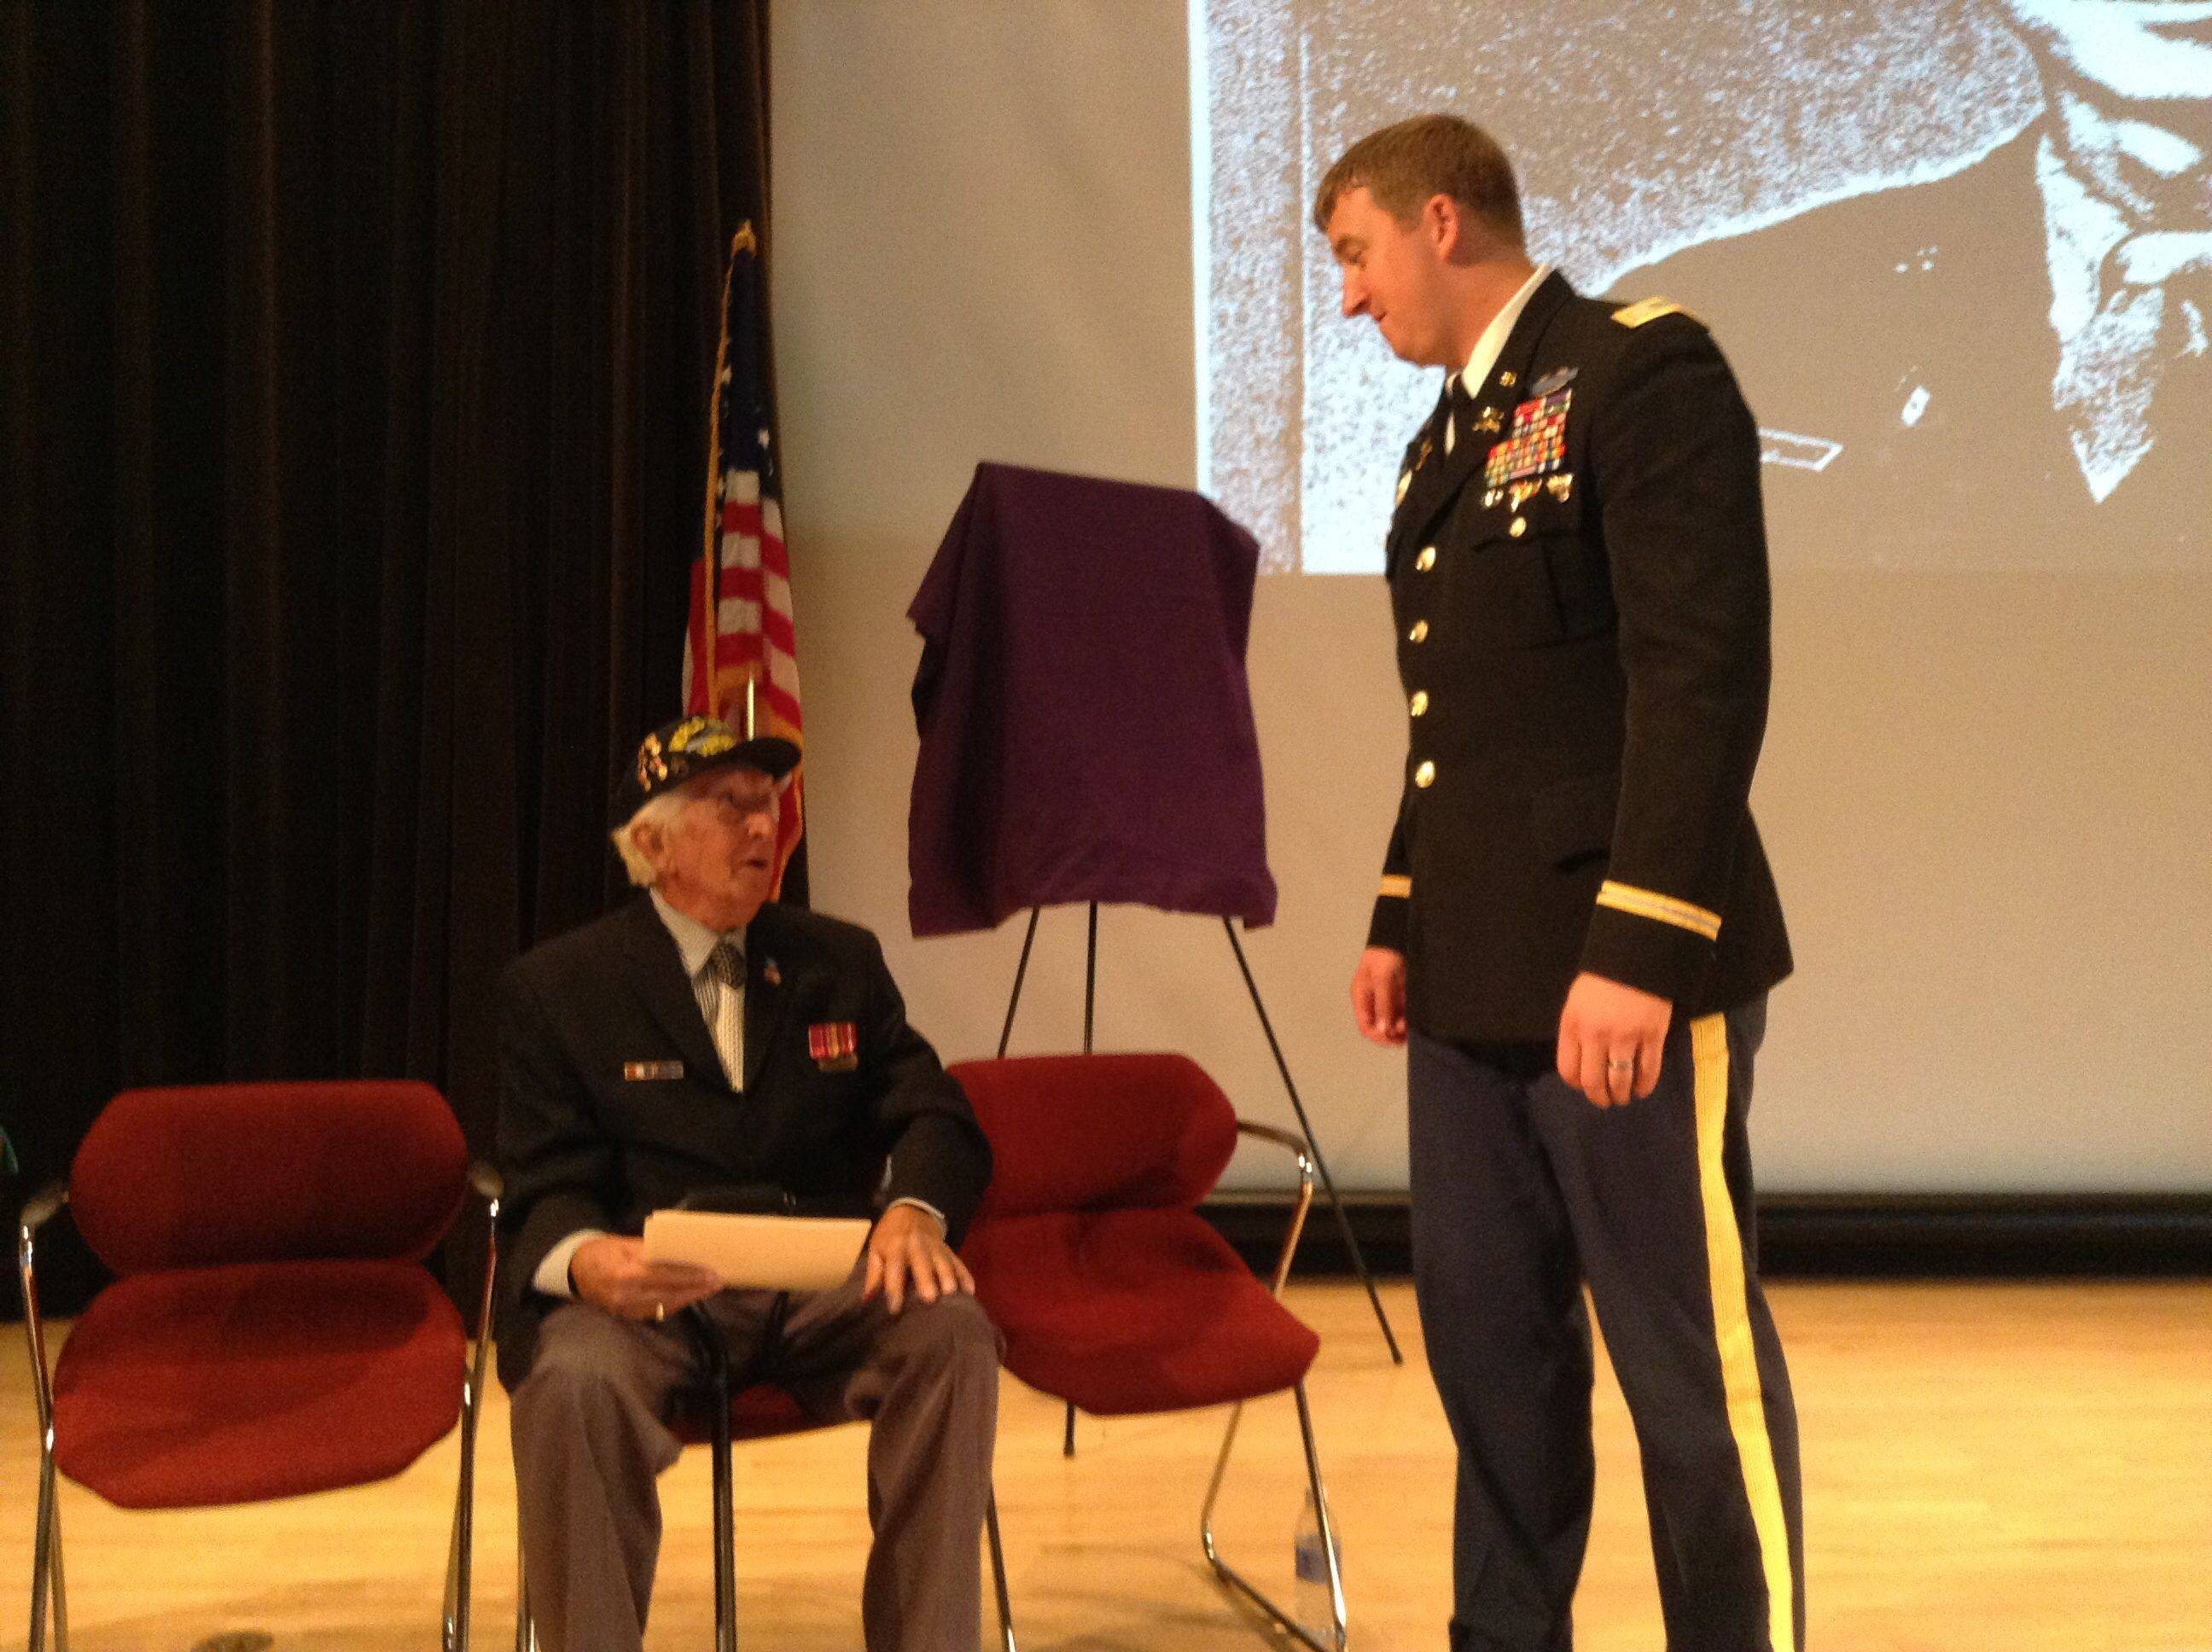 Former Army Staff Sgt. John Trinca of Antioch Township talks with Army Capt. Zachariah Fike at the College of Lake County on Sunday. Fike was instrumental in bringing together Trinca and the family of Thomas Bateman, a soldier whose death Trinca witnessed during World War II.